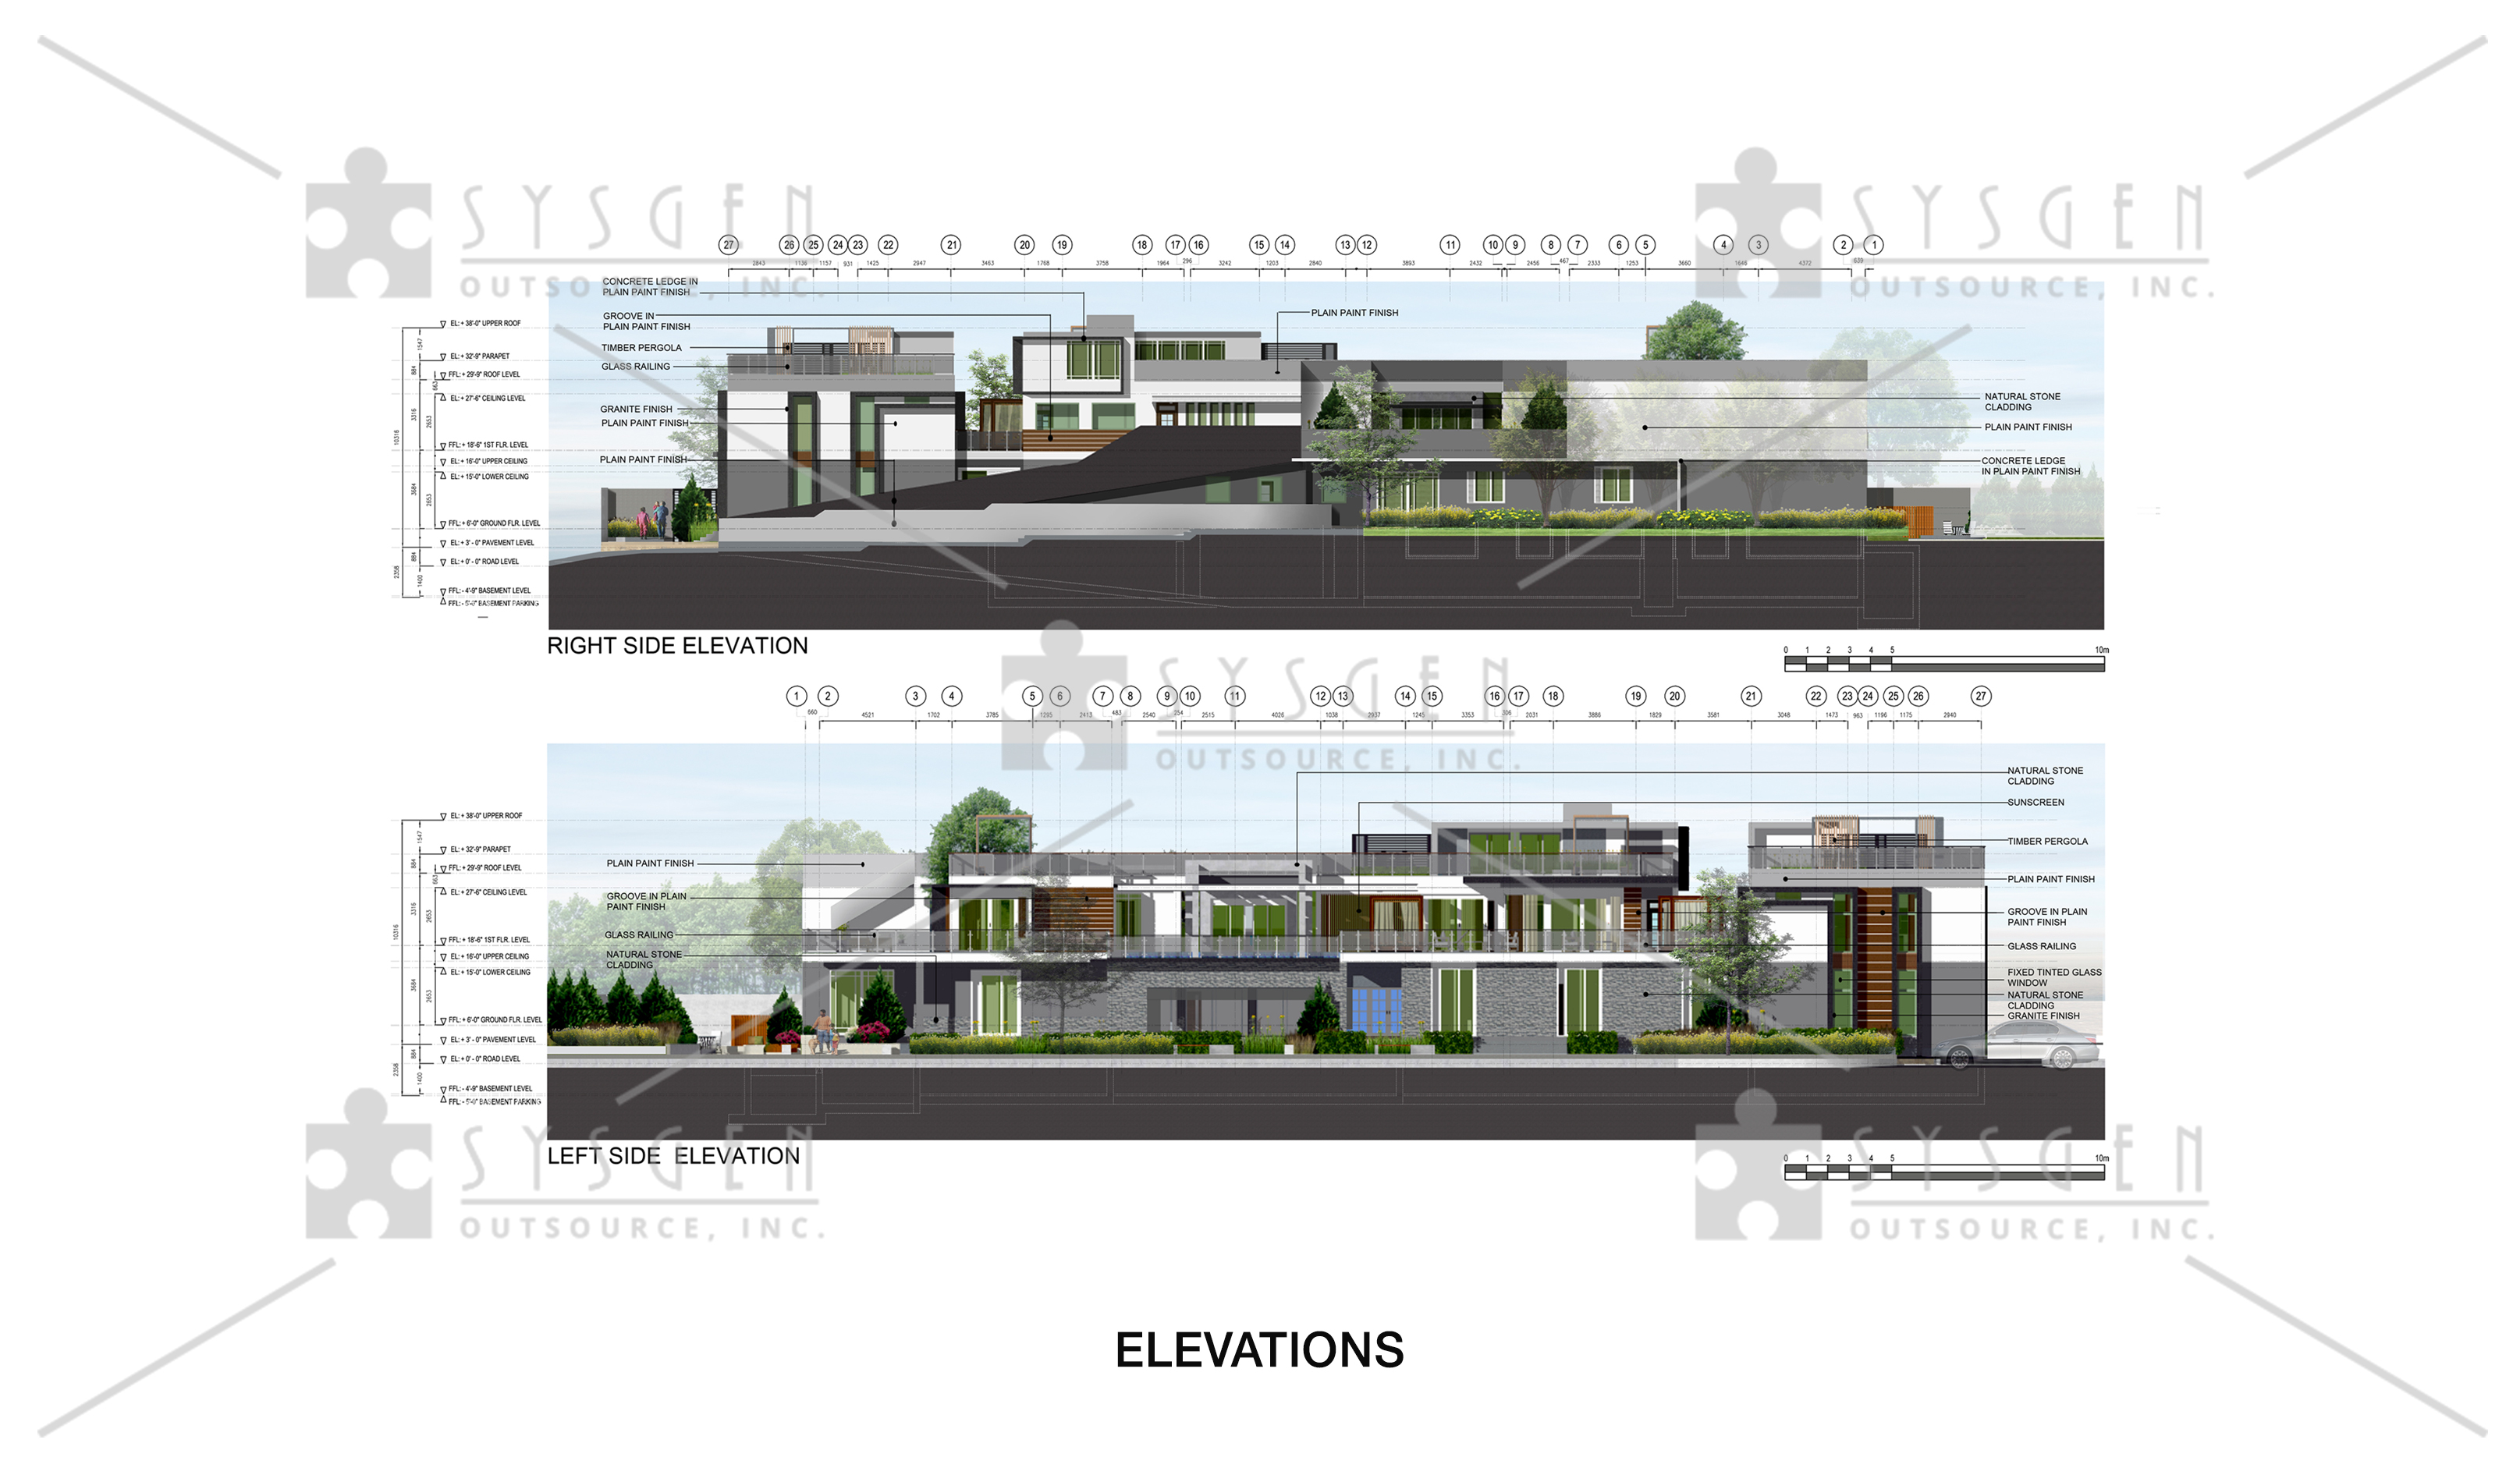 sysgen-outsource-cad-outsourcing-services-sketch-up-residential_villa-jj12